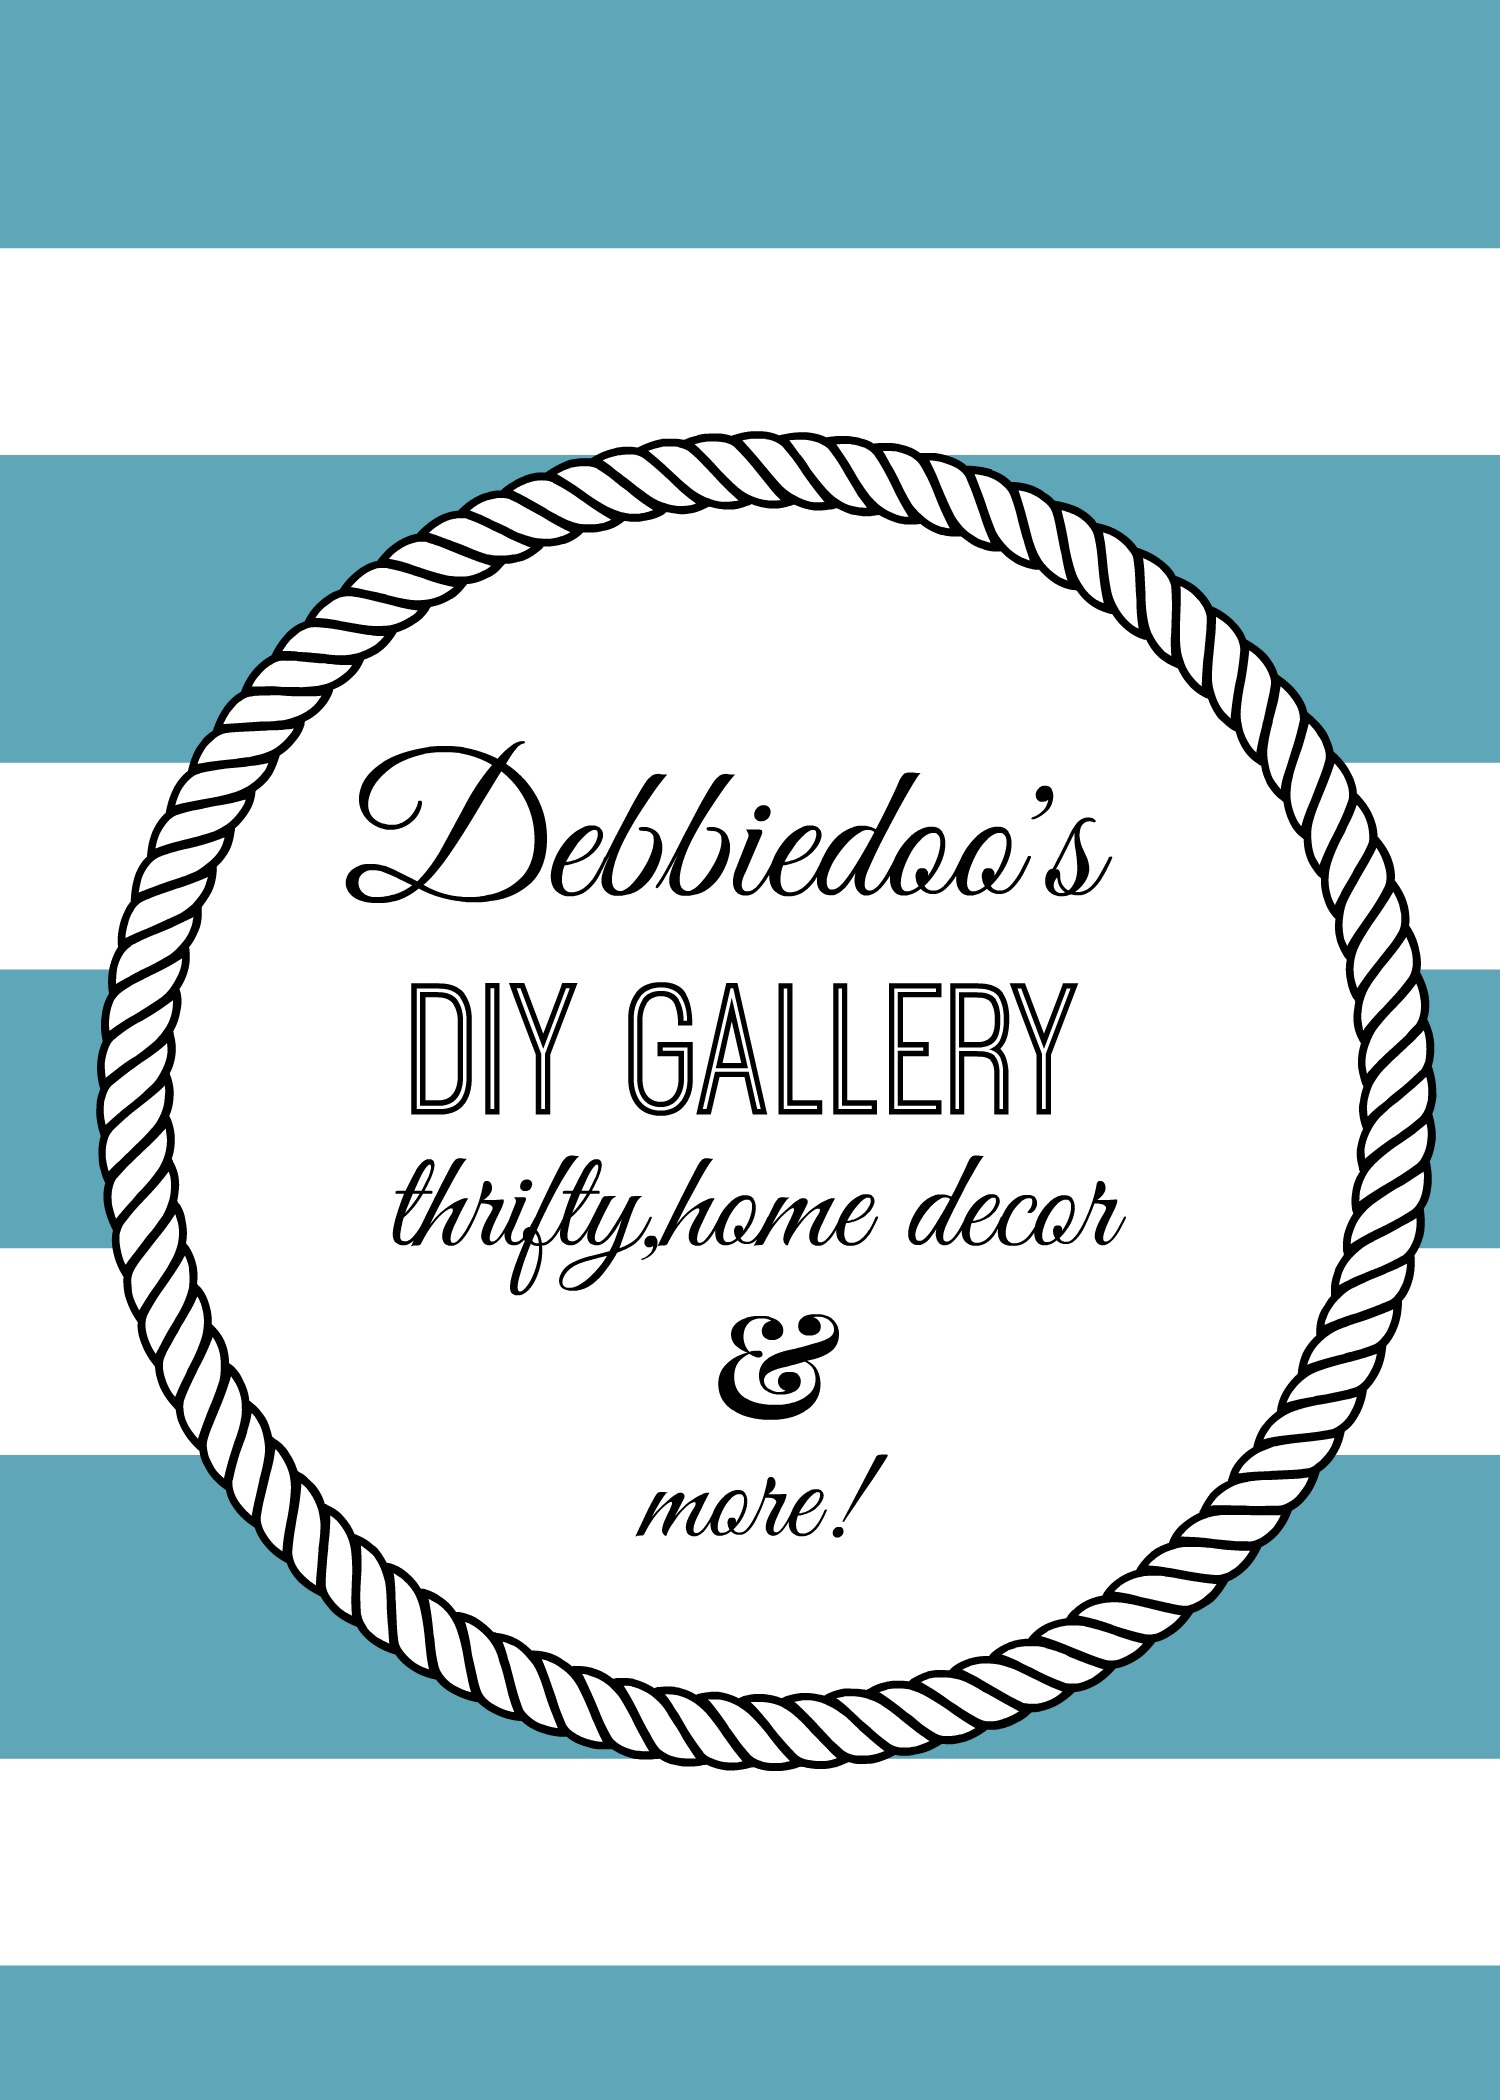 Debbiedoo's thrifty home decor and more